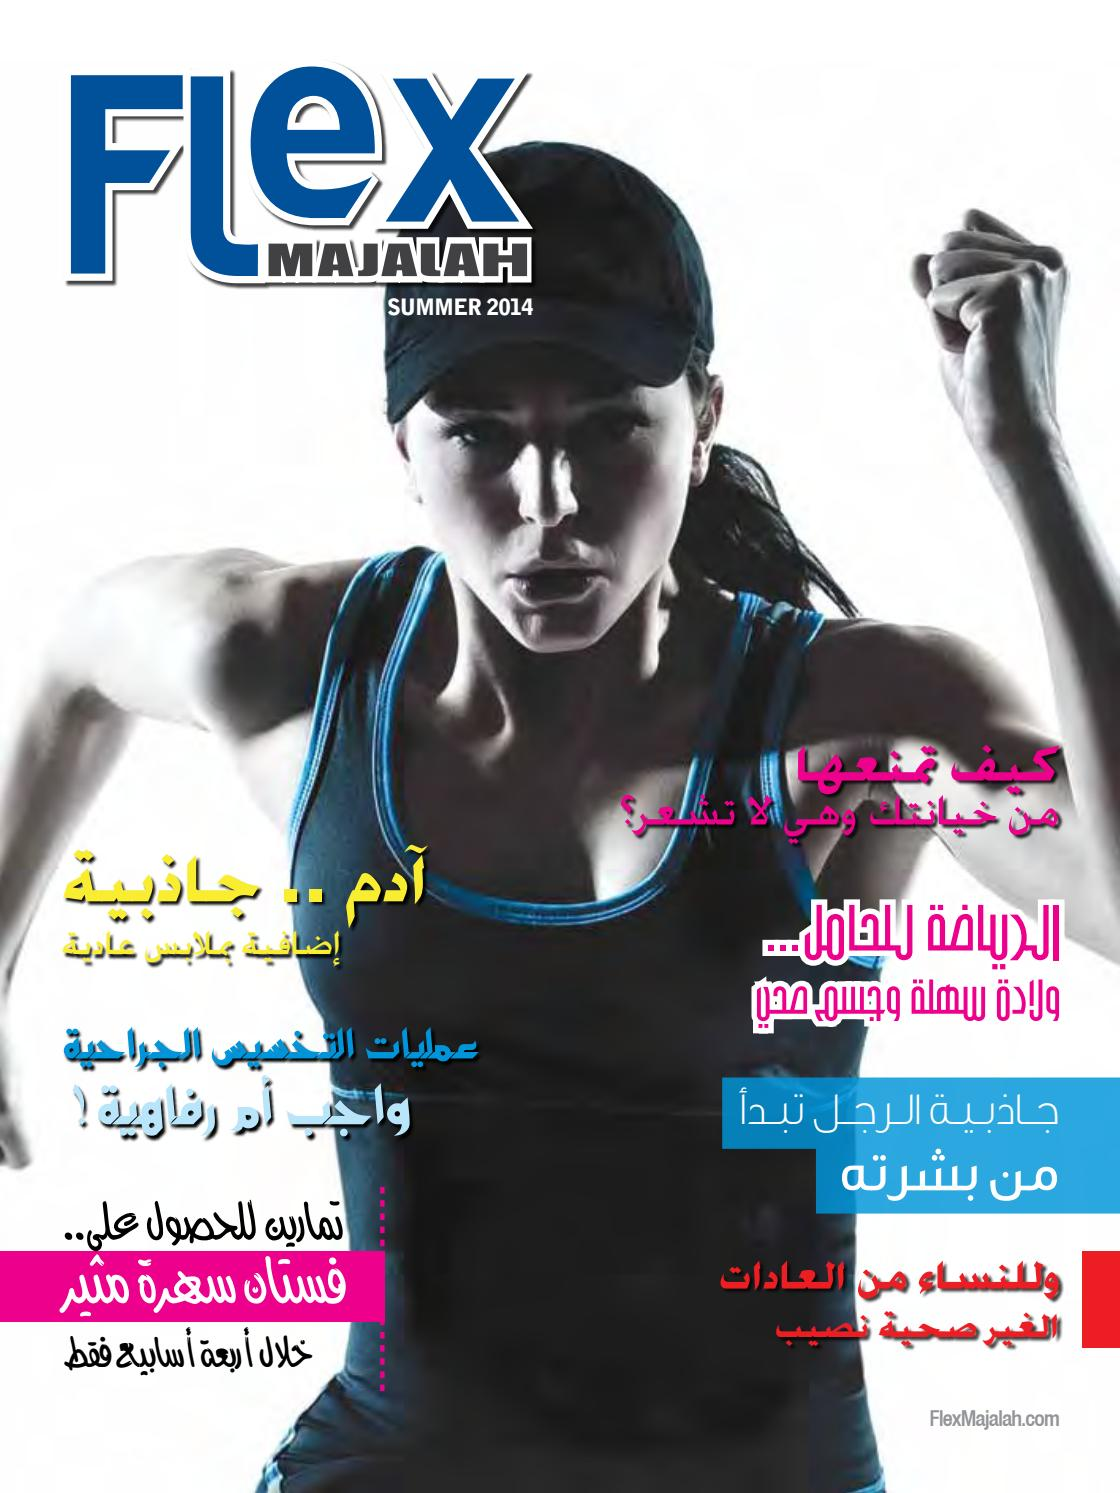 514ad2791fa26 Flex majalah issue 4 by hamed alsayegh by engineeer1 - issuu